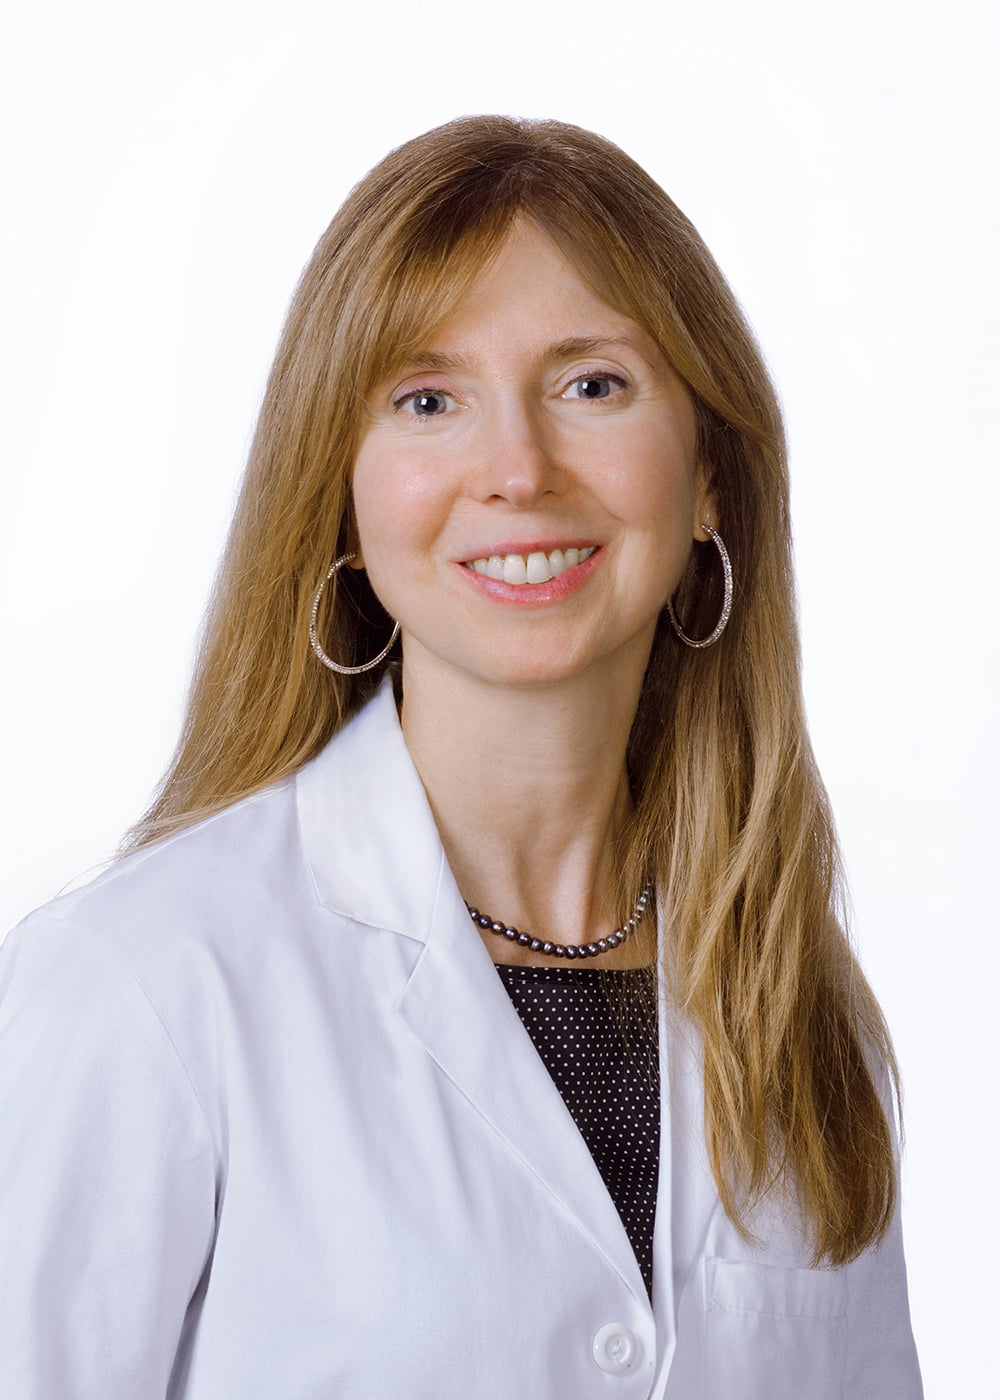 Virginia Eye Institute Provider - Kimberly Anderson M.D.